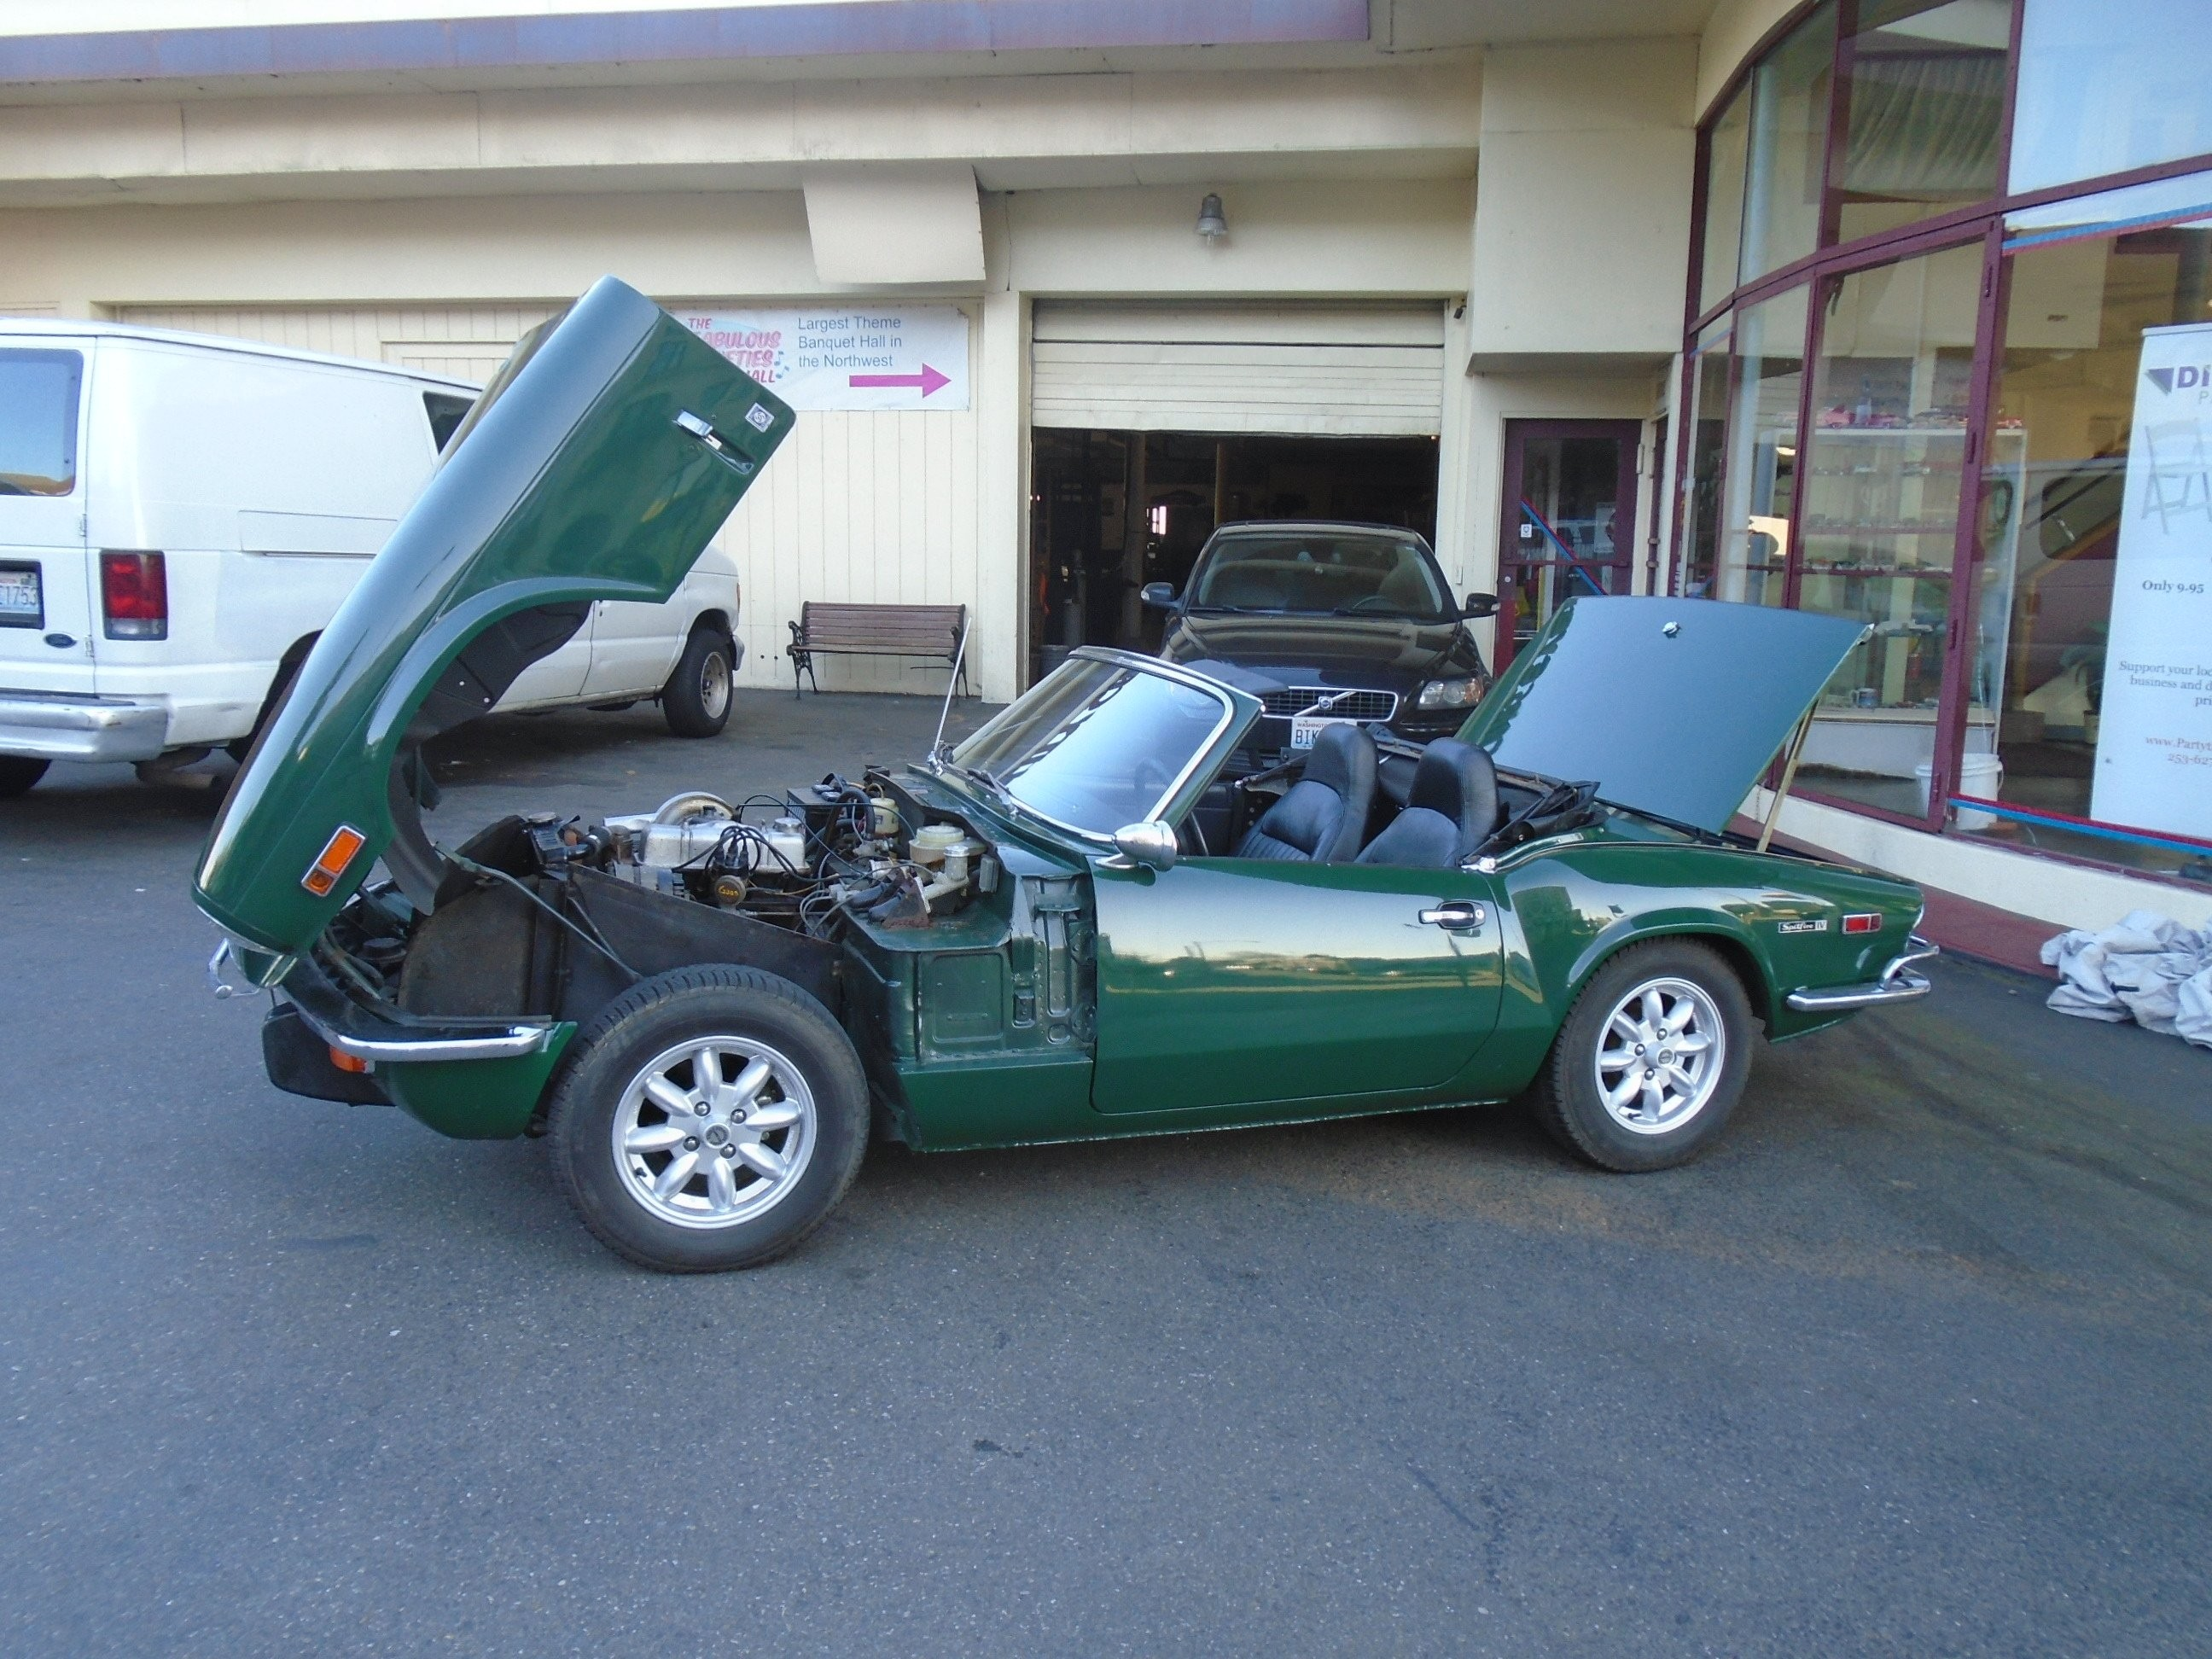 craigslist denver cars and trucks by dealer awesome triumph spitfire for sale â–· used